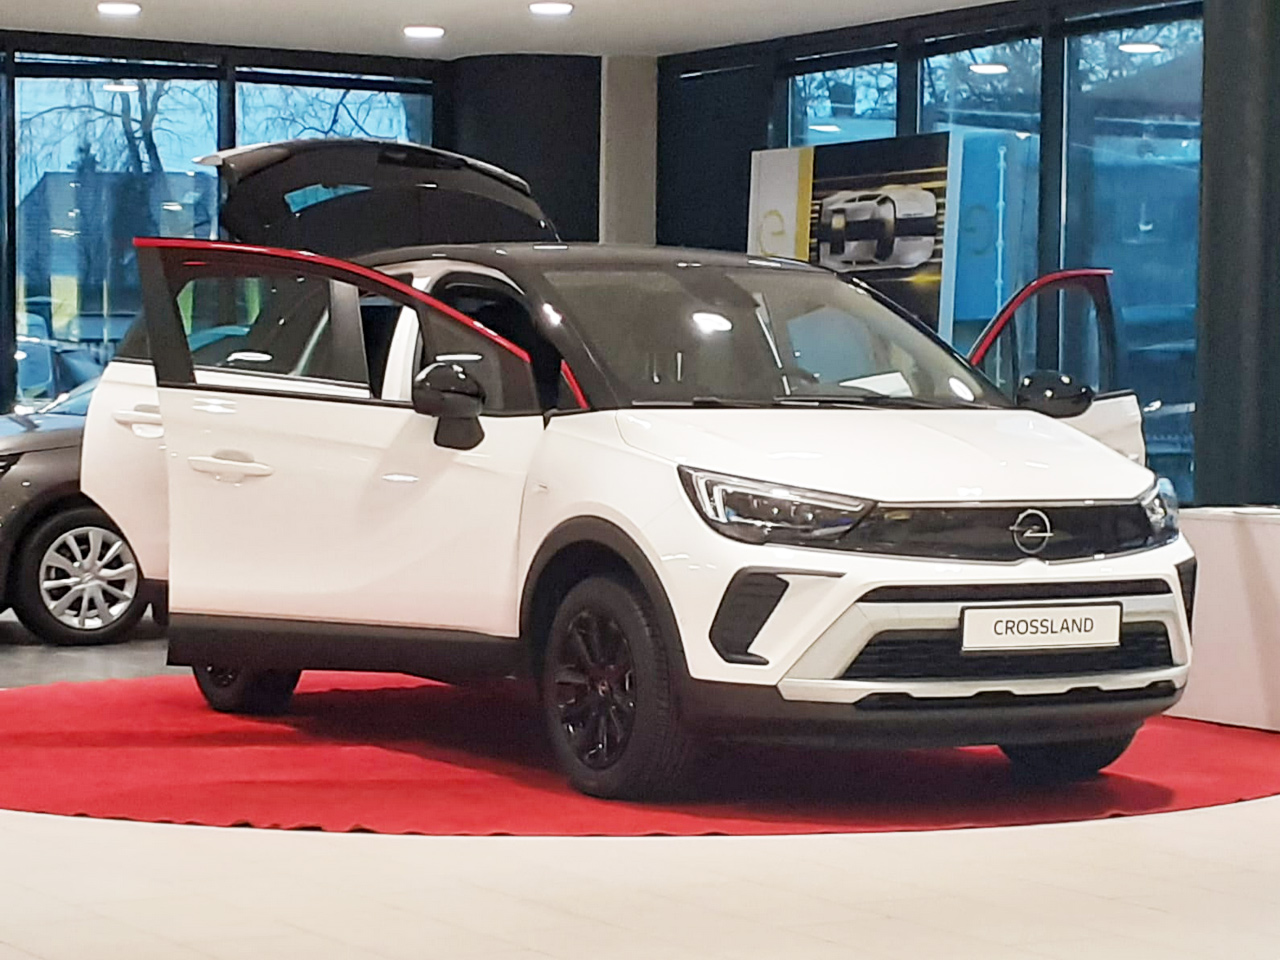 Nowy Crossland po liftingu salon Opel